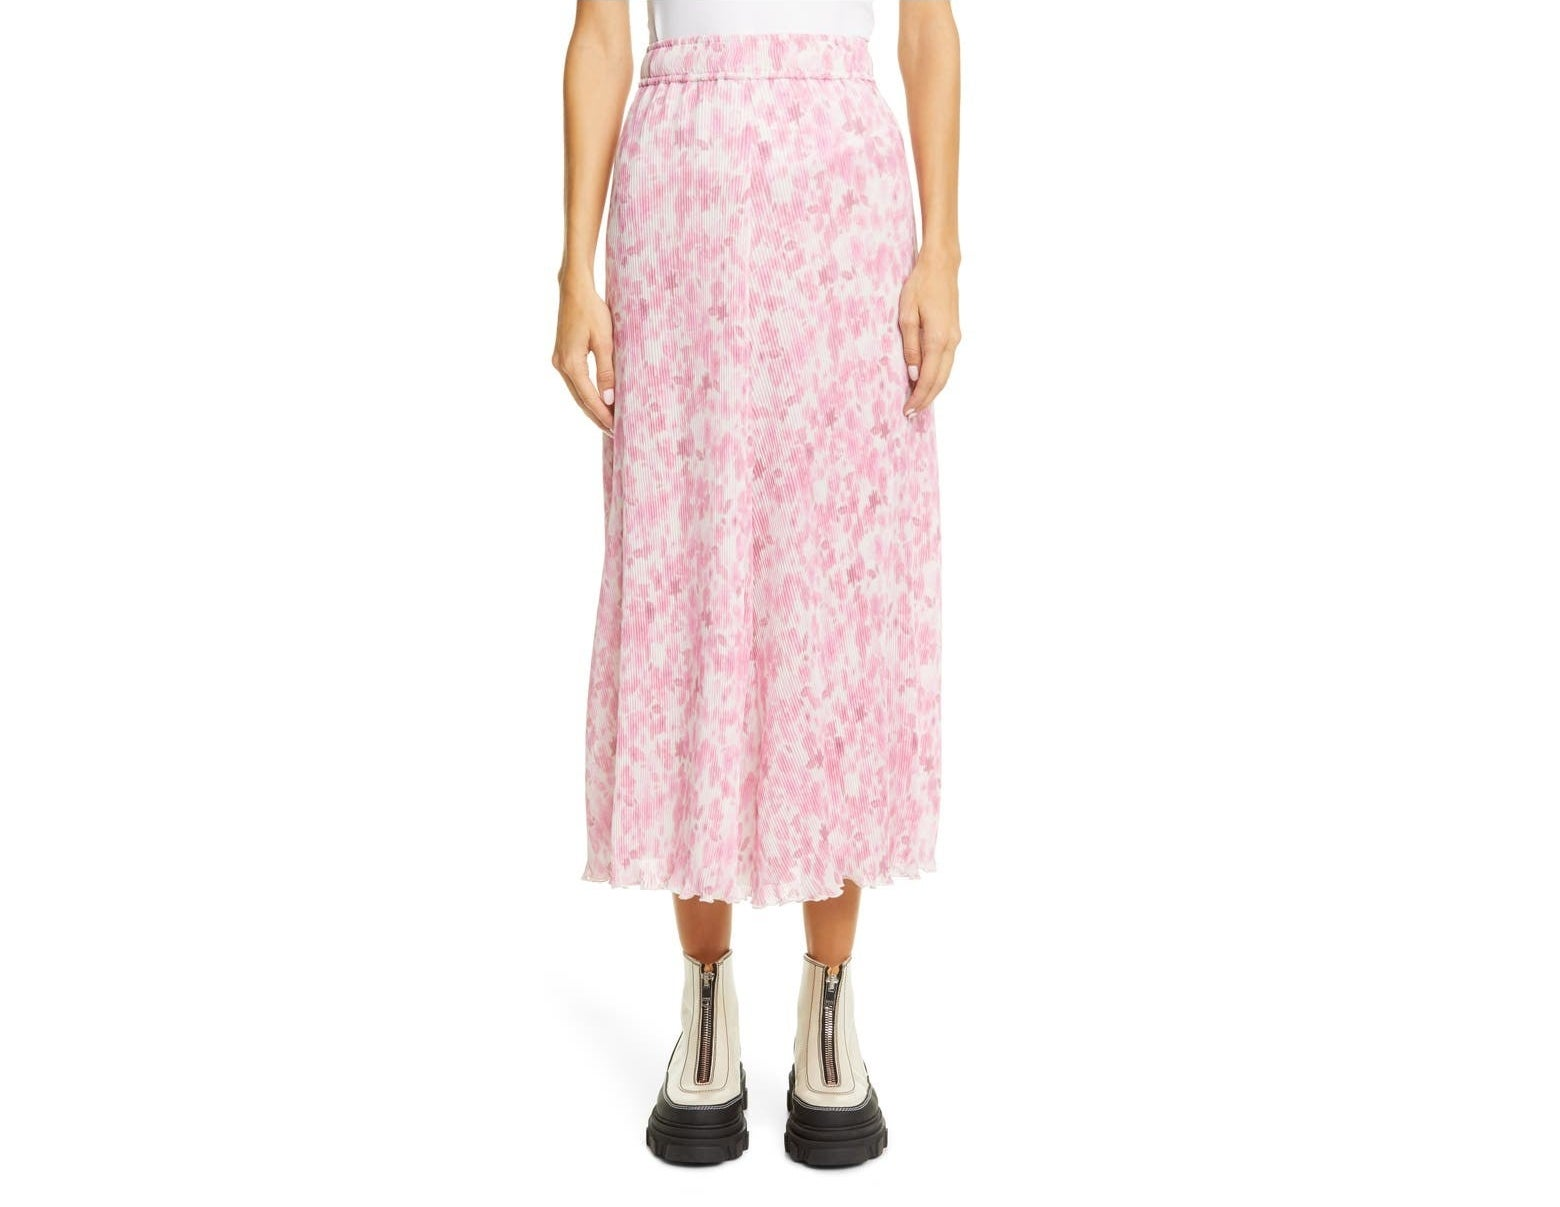 The pink and white pleated midi skirt